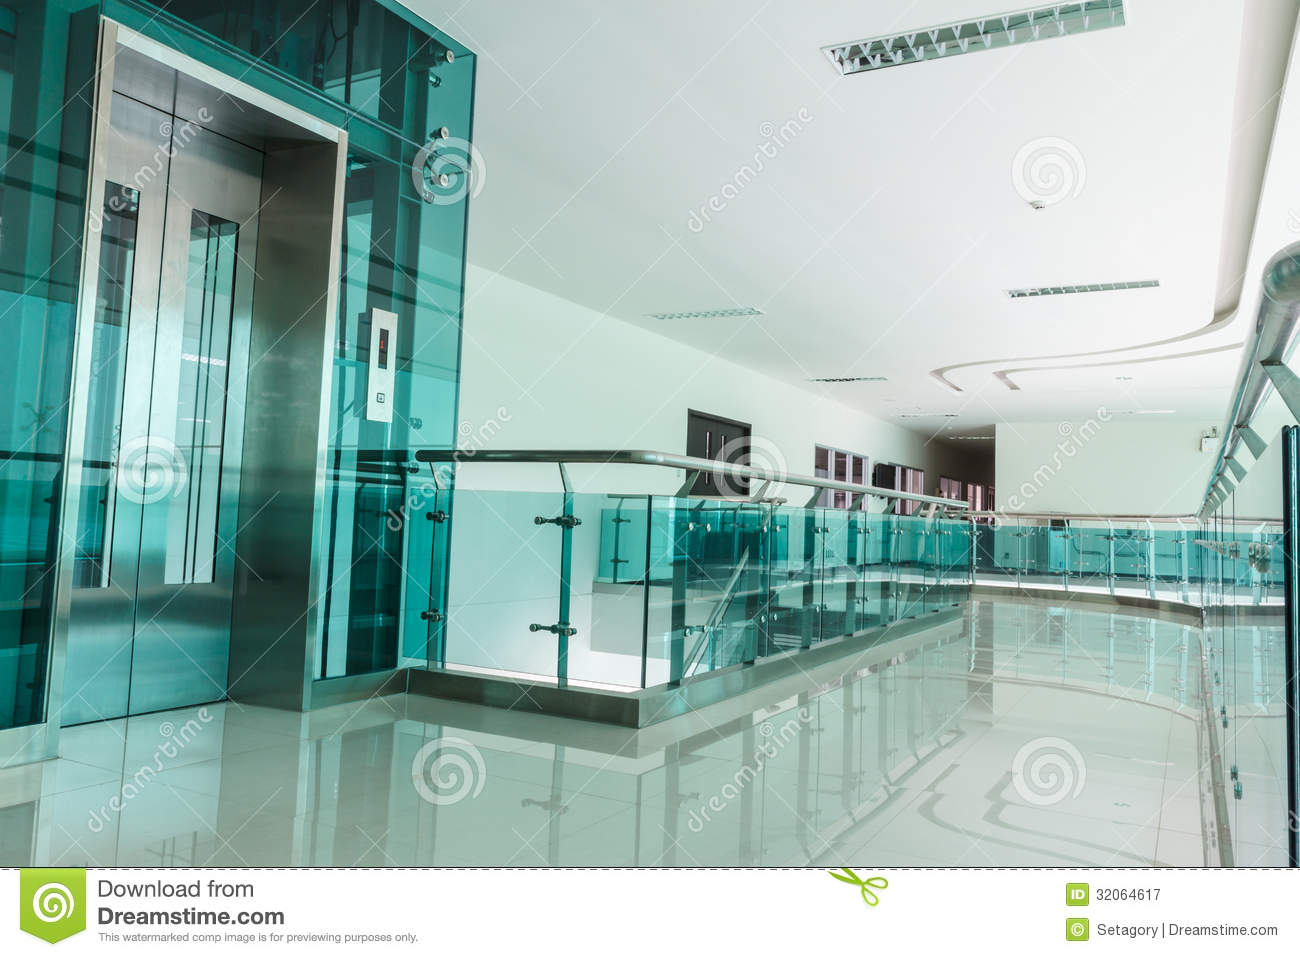 FromElevator